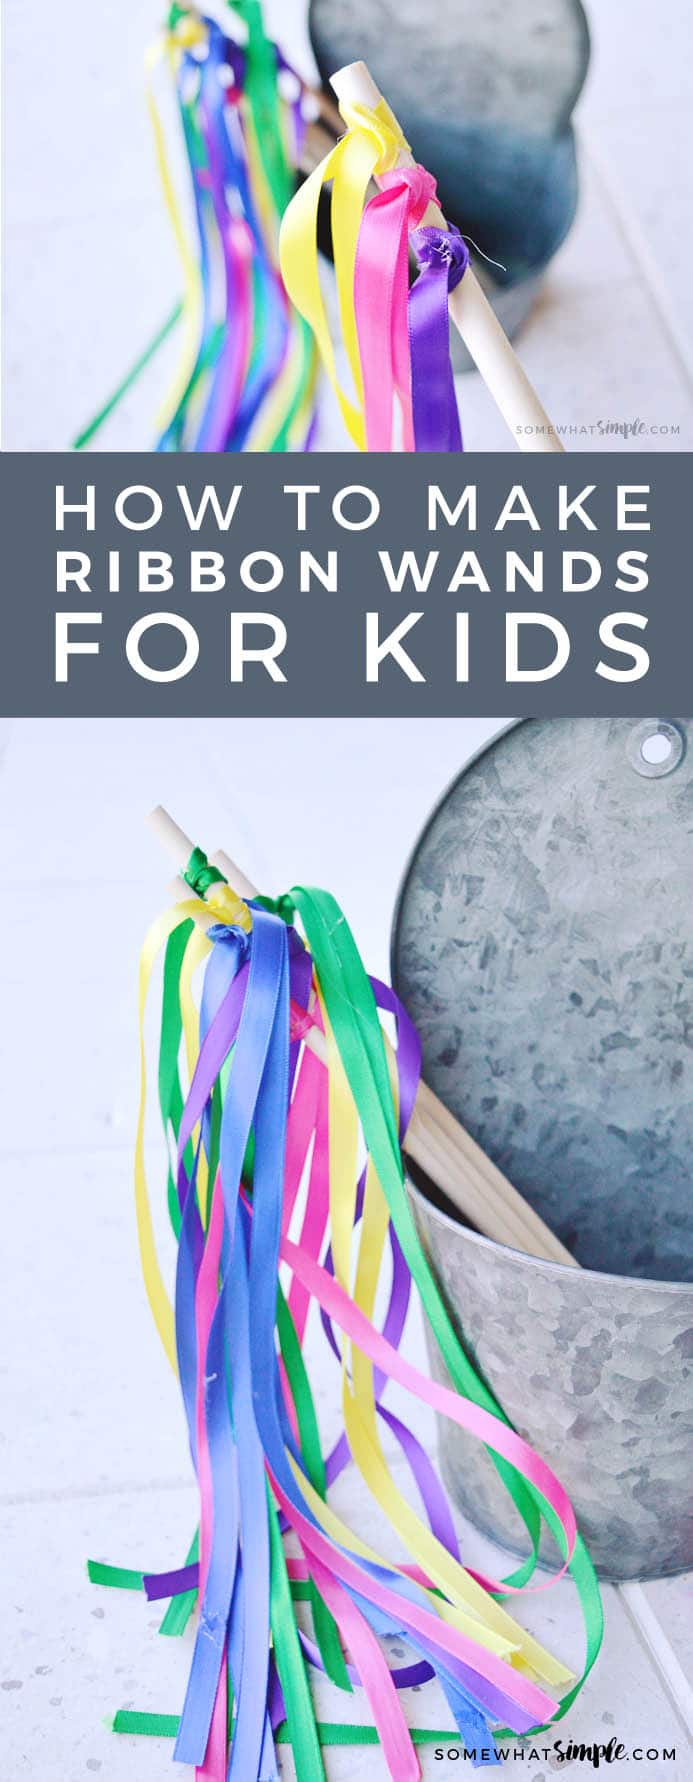 EASY 5 minute DIY ribbon wands.  Here is a simple and easy tutorial on how to make ribbon wands that your kids will love! #ribbonwands, #howtomakeribbonwands #kidscrafts #easy #fairywand #streamerwands #wand #diywand #videotutorial